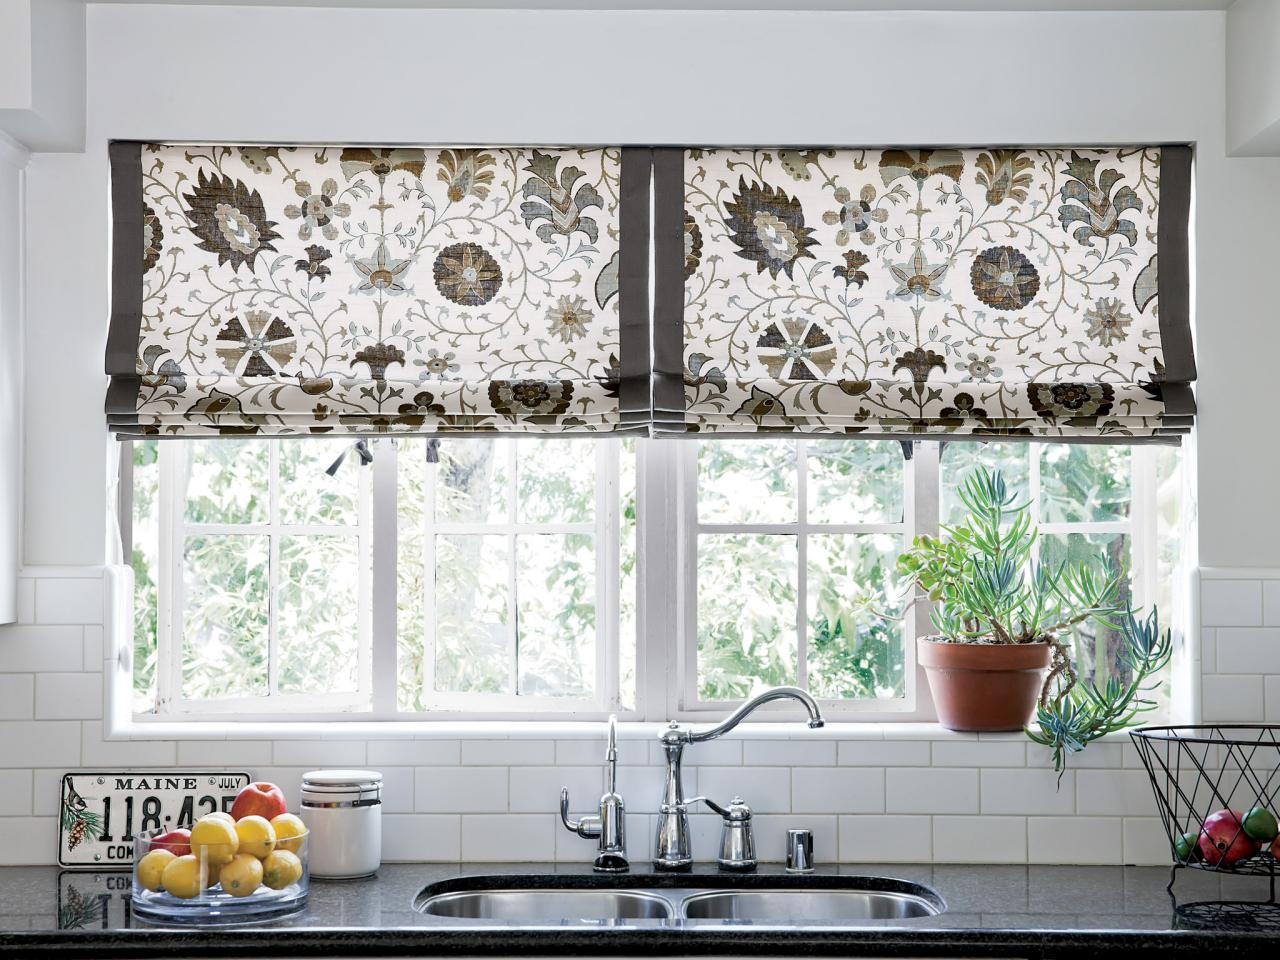 Creative Kitchen Window Treatments: HGTV Pictures & Ideas | HGTV